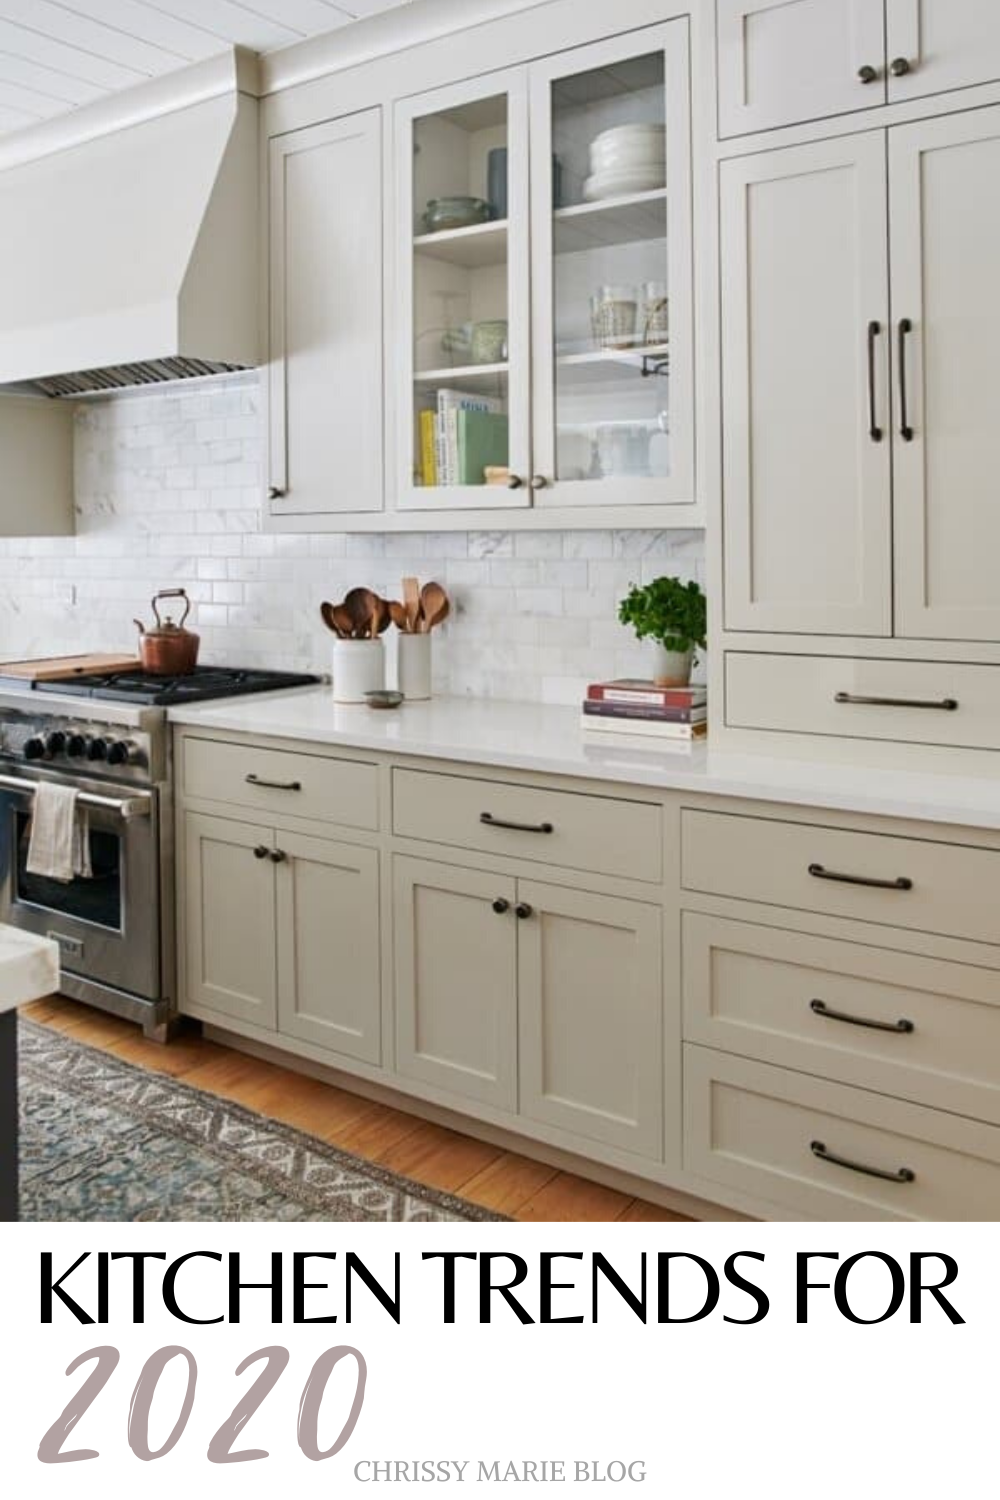 5 Kitchen Trends For 2020 Keeping Your New Kitchen Relevant In